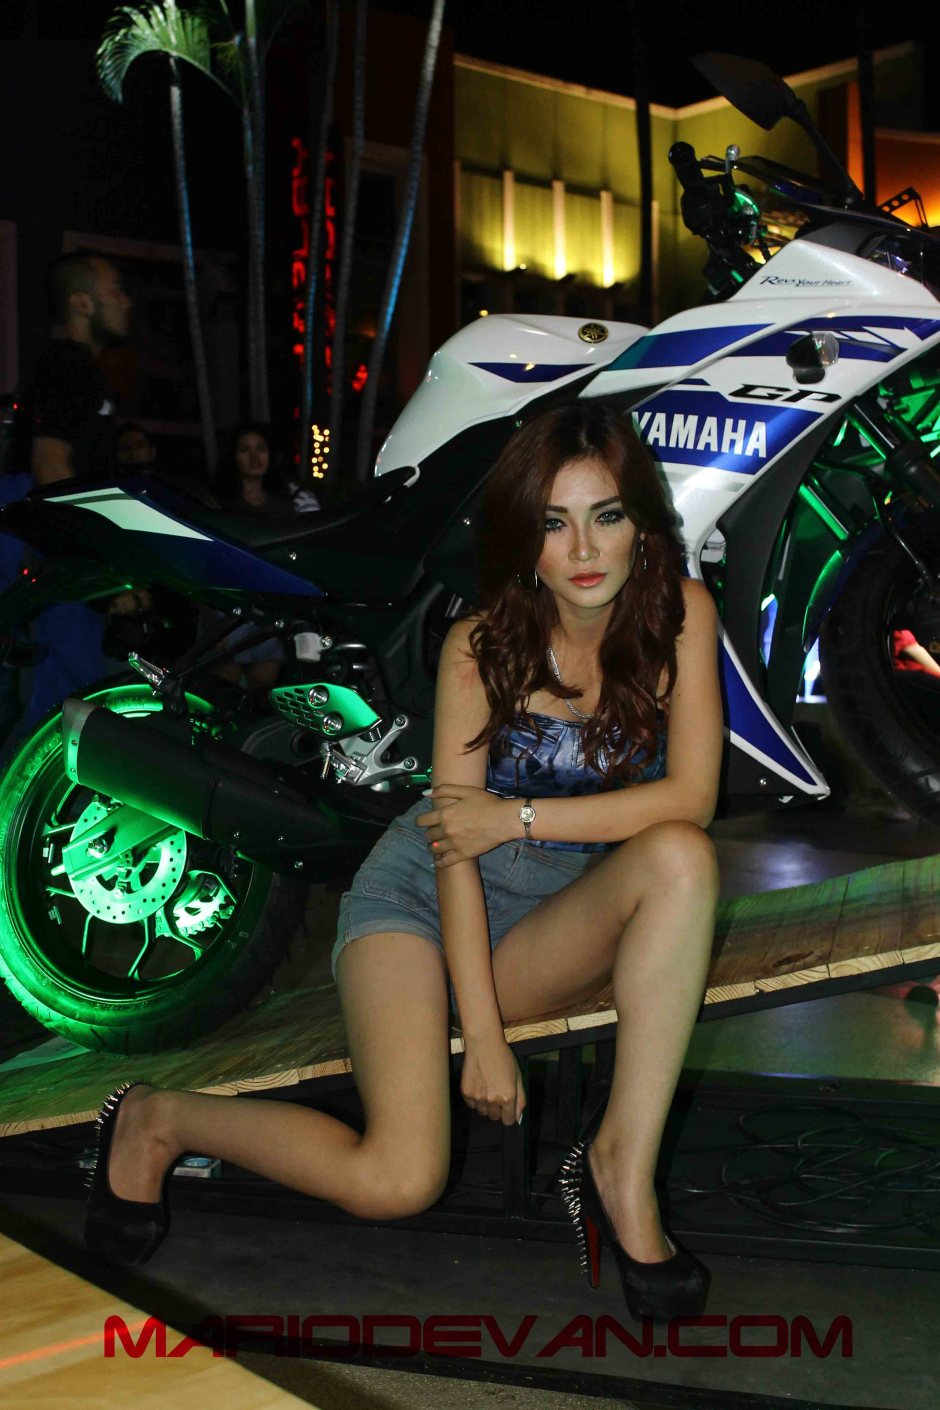 Model cantik Yamaha R25